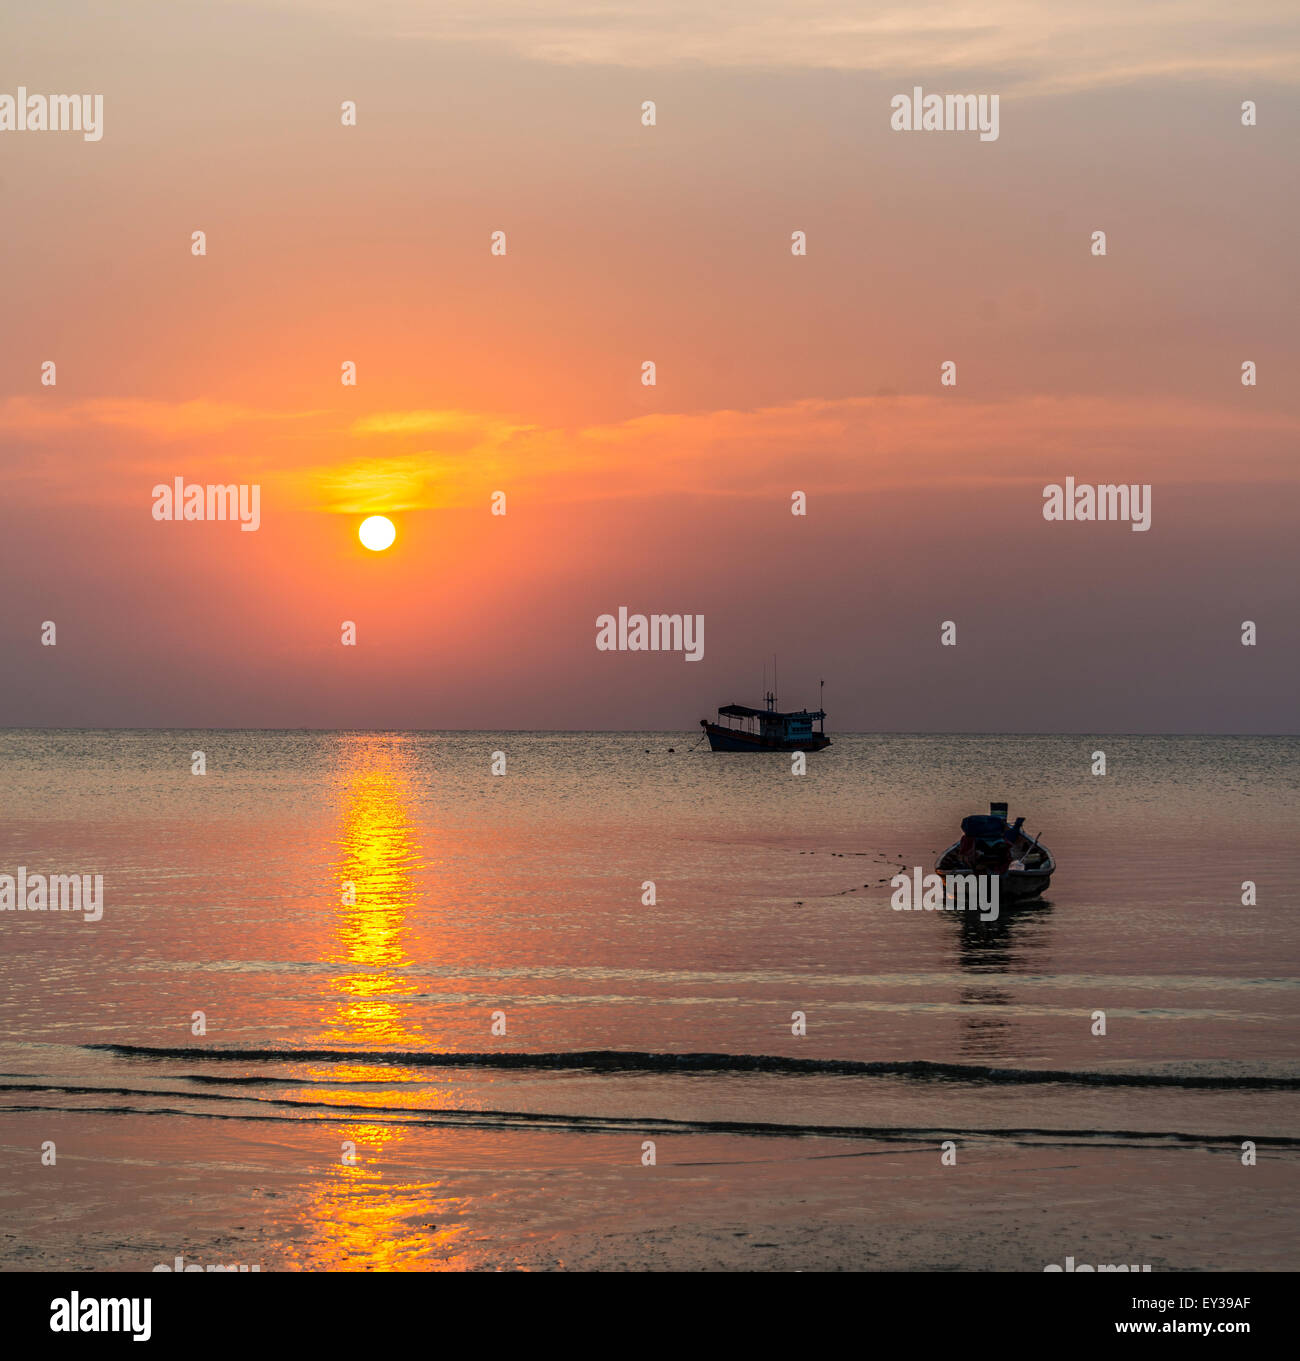 South China Sea at sunset with boats, Gulf of Thailand, Koh Tao island, Thailand Stock Photo